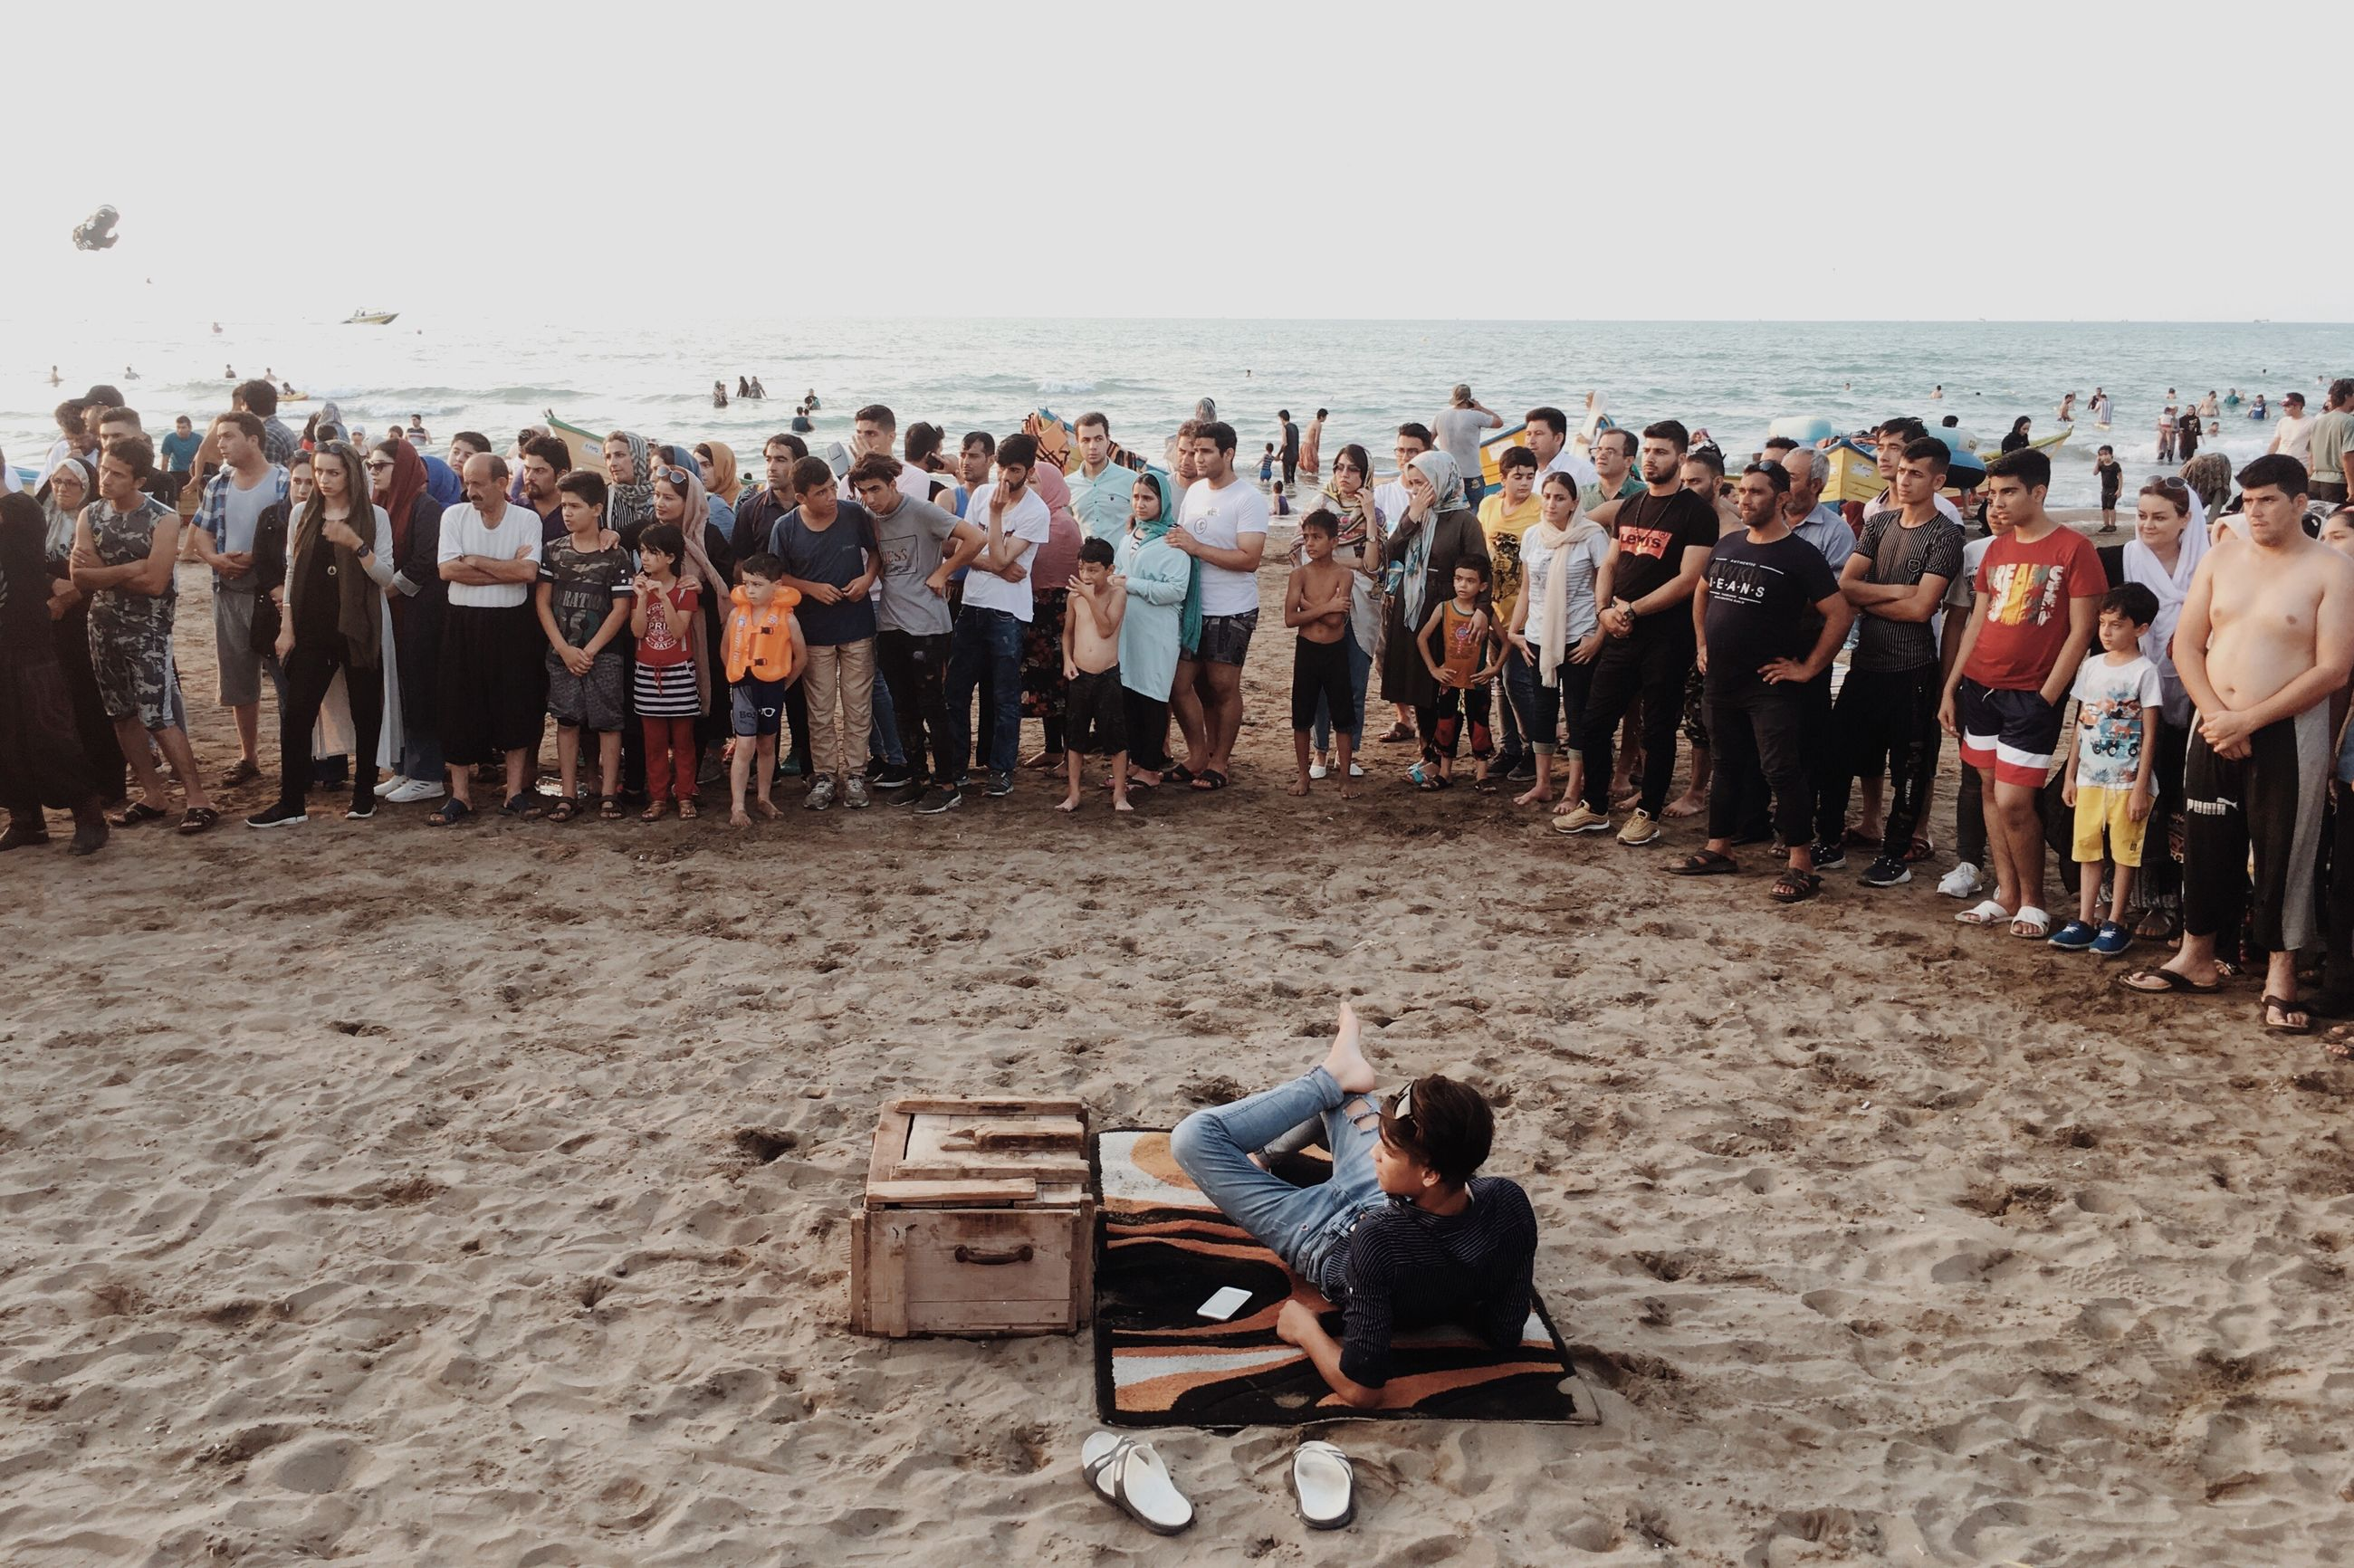 crowd, large group of people, group of people, land, real people, men, sand, beach, leisure activity, adult, casual clothing, women, sea, day, trip, holiday, sitting, full length, sky, outdoors